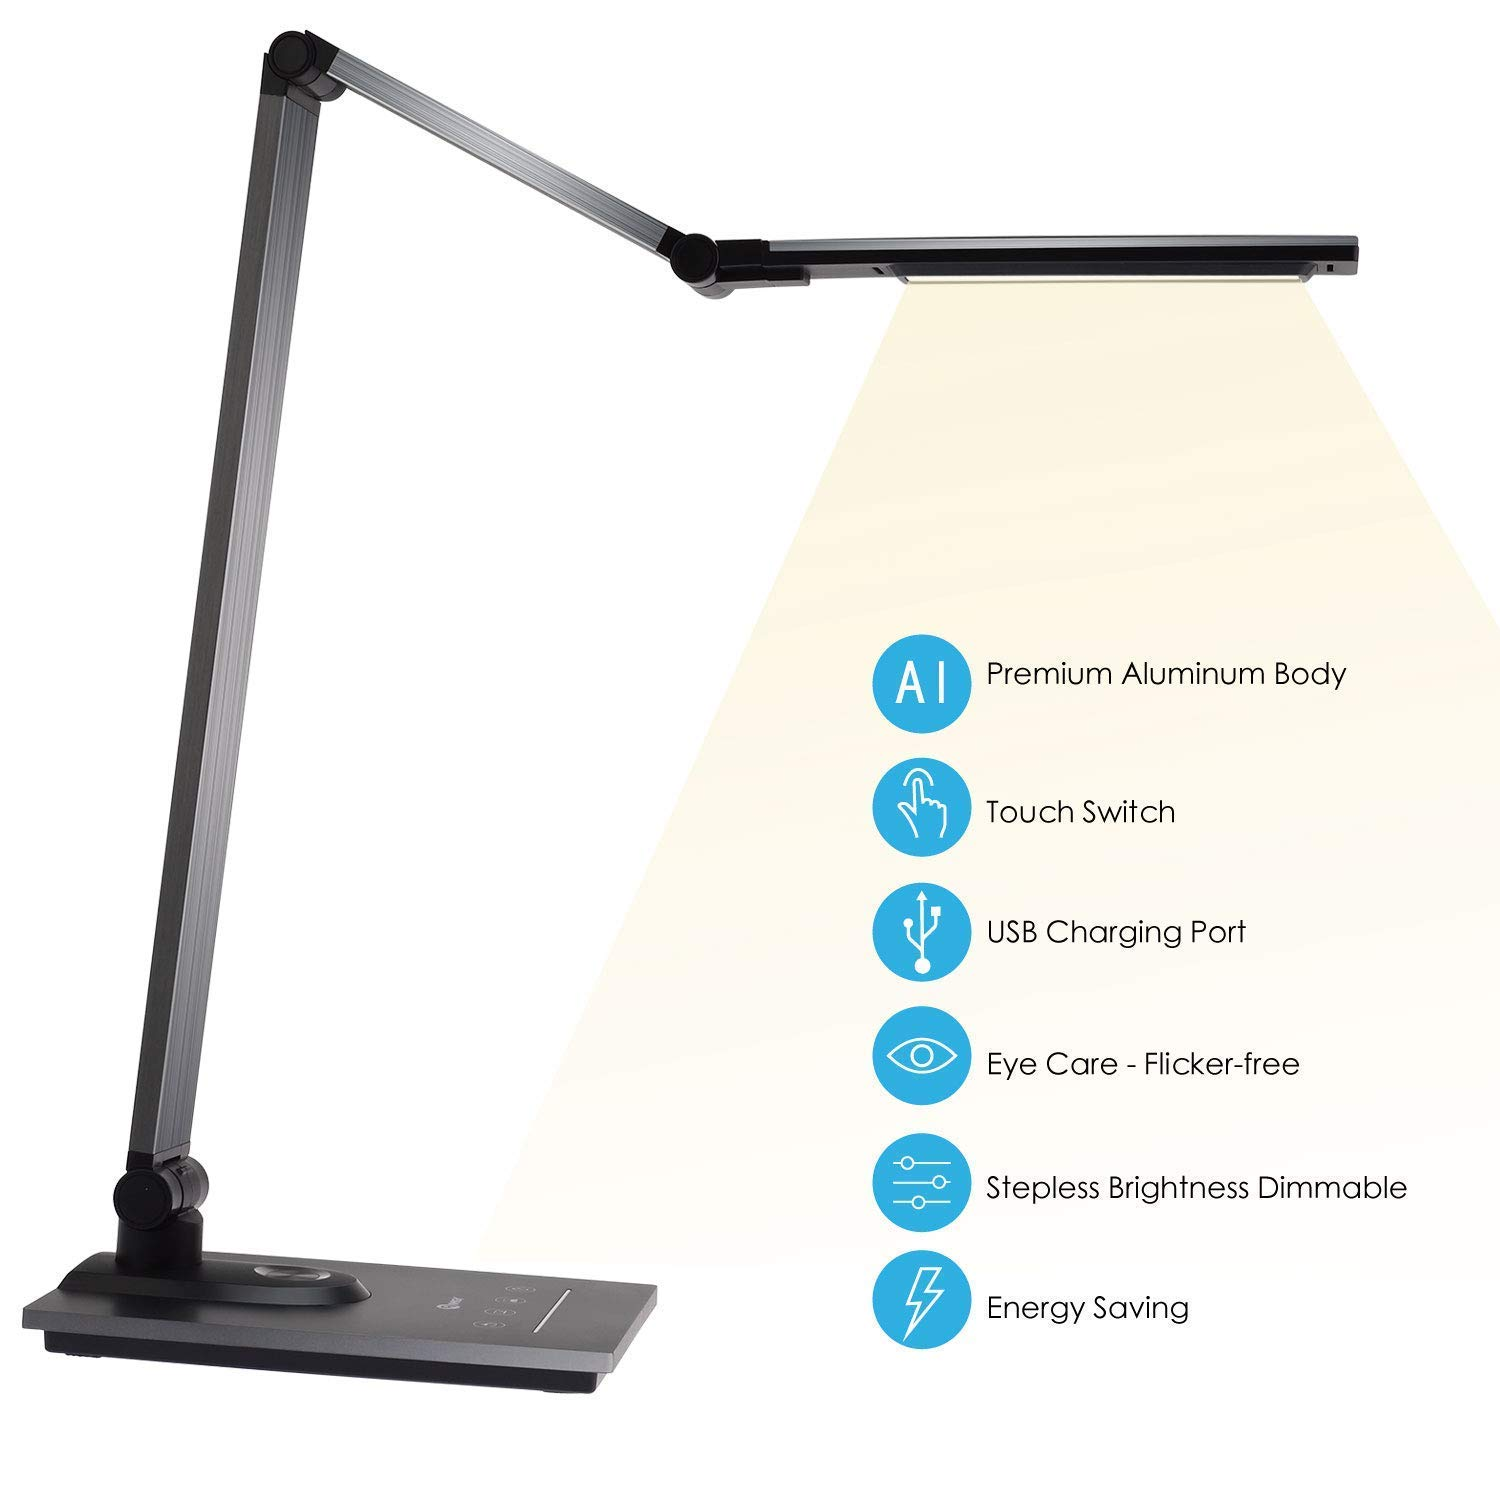 IMIGY Aluminum Alloy LED Desk Lamp with USB Charging Port, 9W Dimmable Office Lamp, Slide Touch Control with Stepless Adjustable Brightness and 3 Color Modes